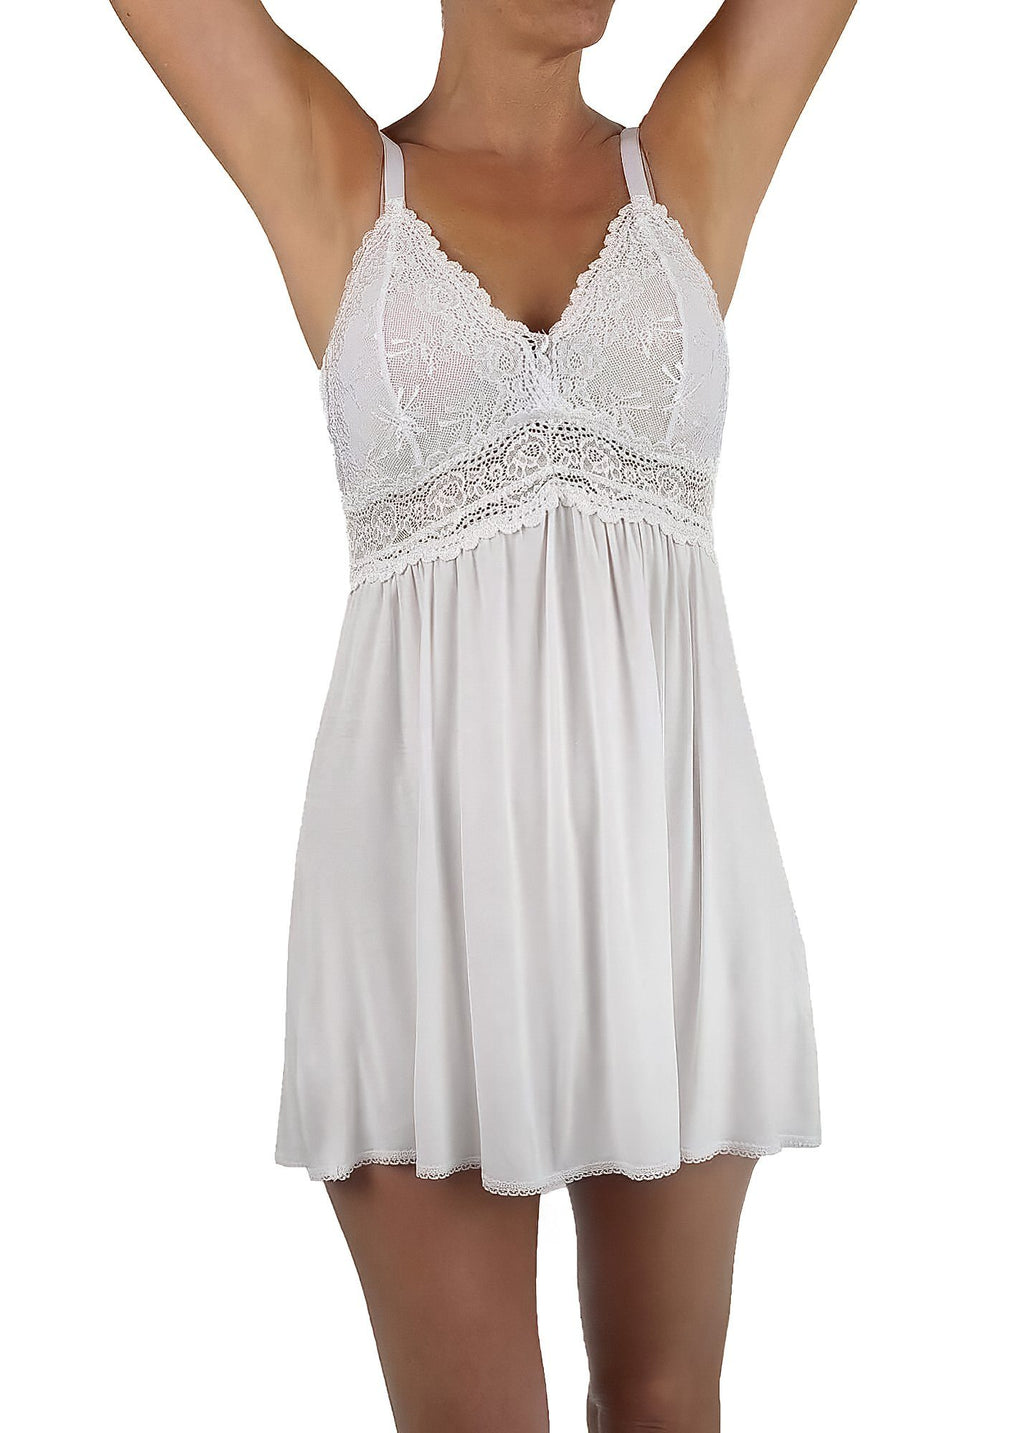 White Knit Chemise Nightgown Mystique Intimates